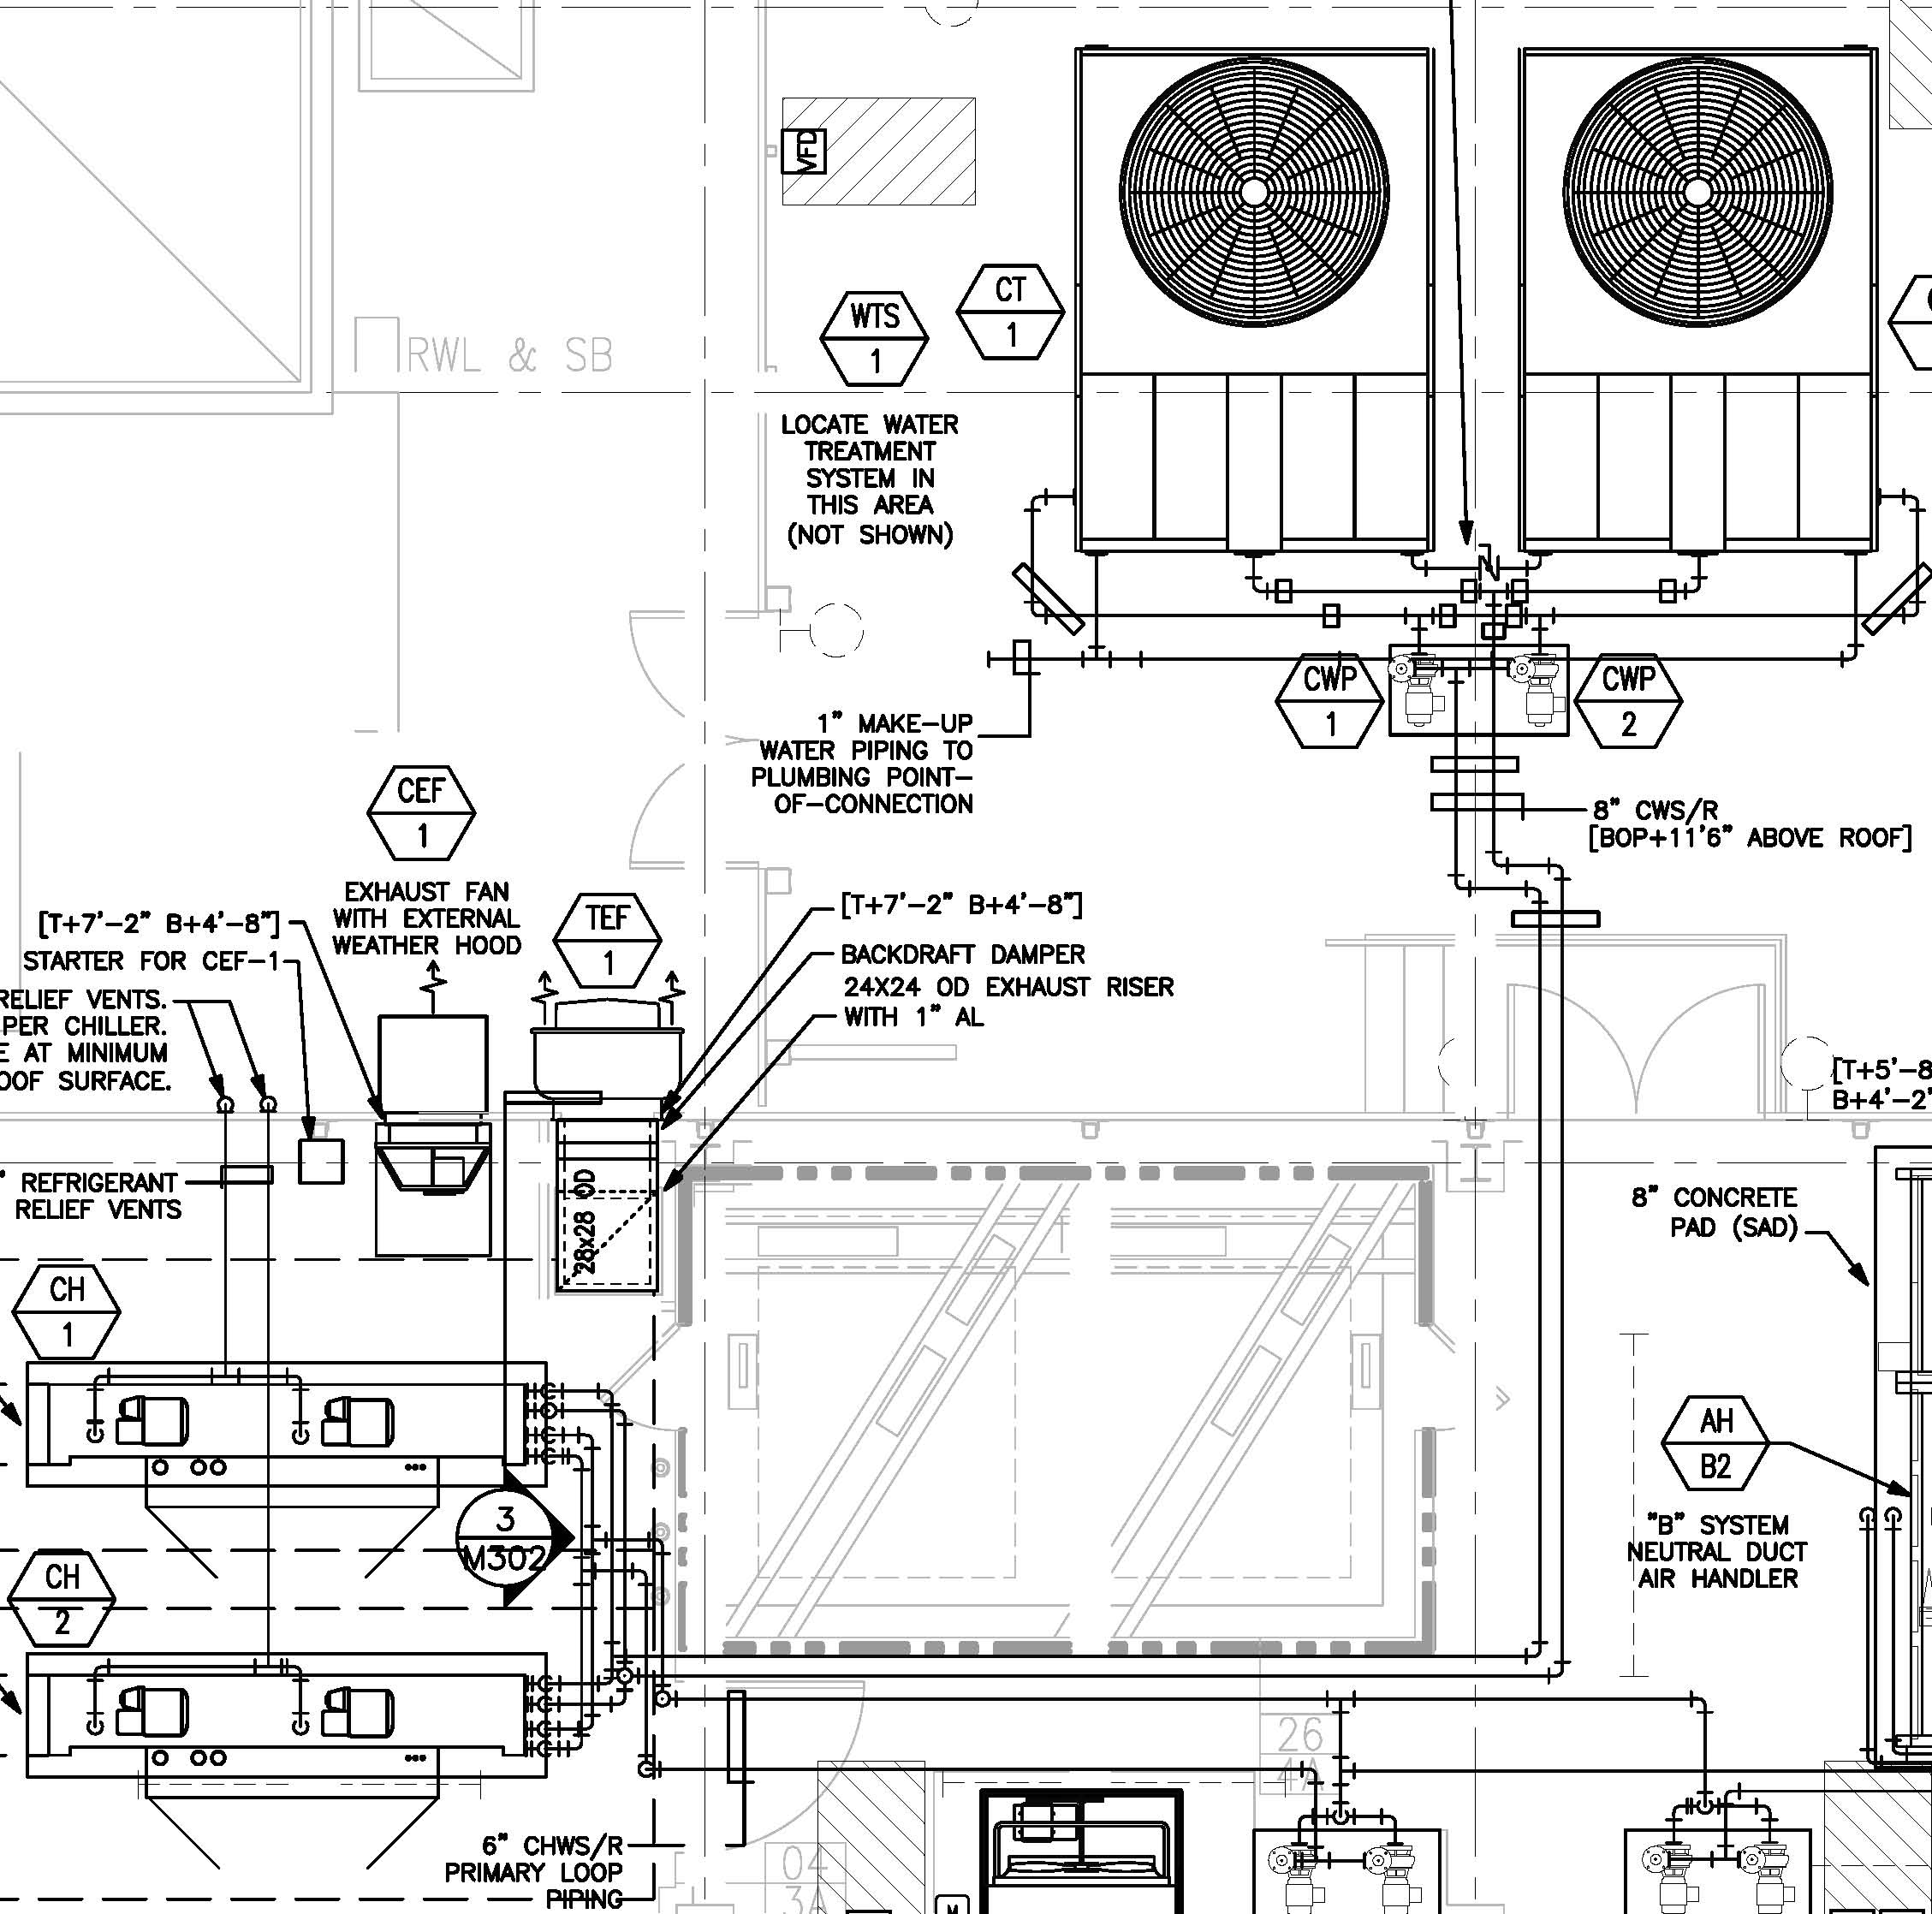 System Diagrams Breaking The Rules A Step By Step Guide Plus Some Condenser Water System Trouble Shooting Tips on Hvac Condenser Wiring Diagram